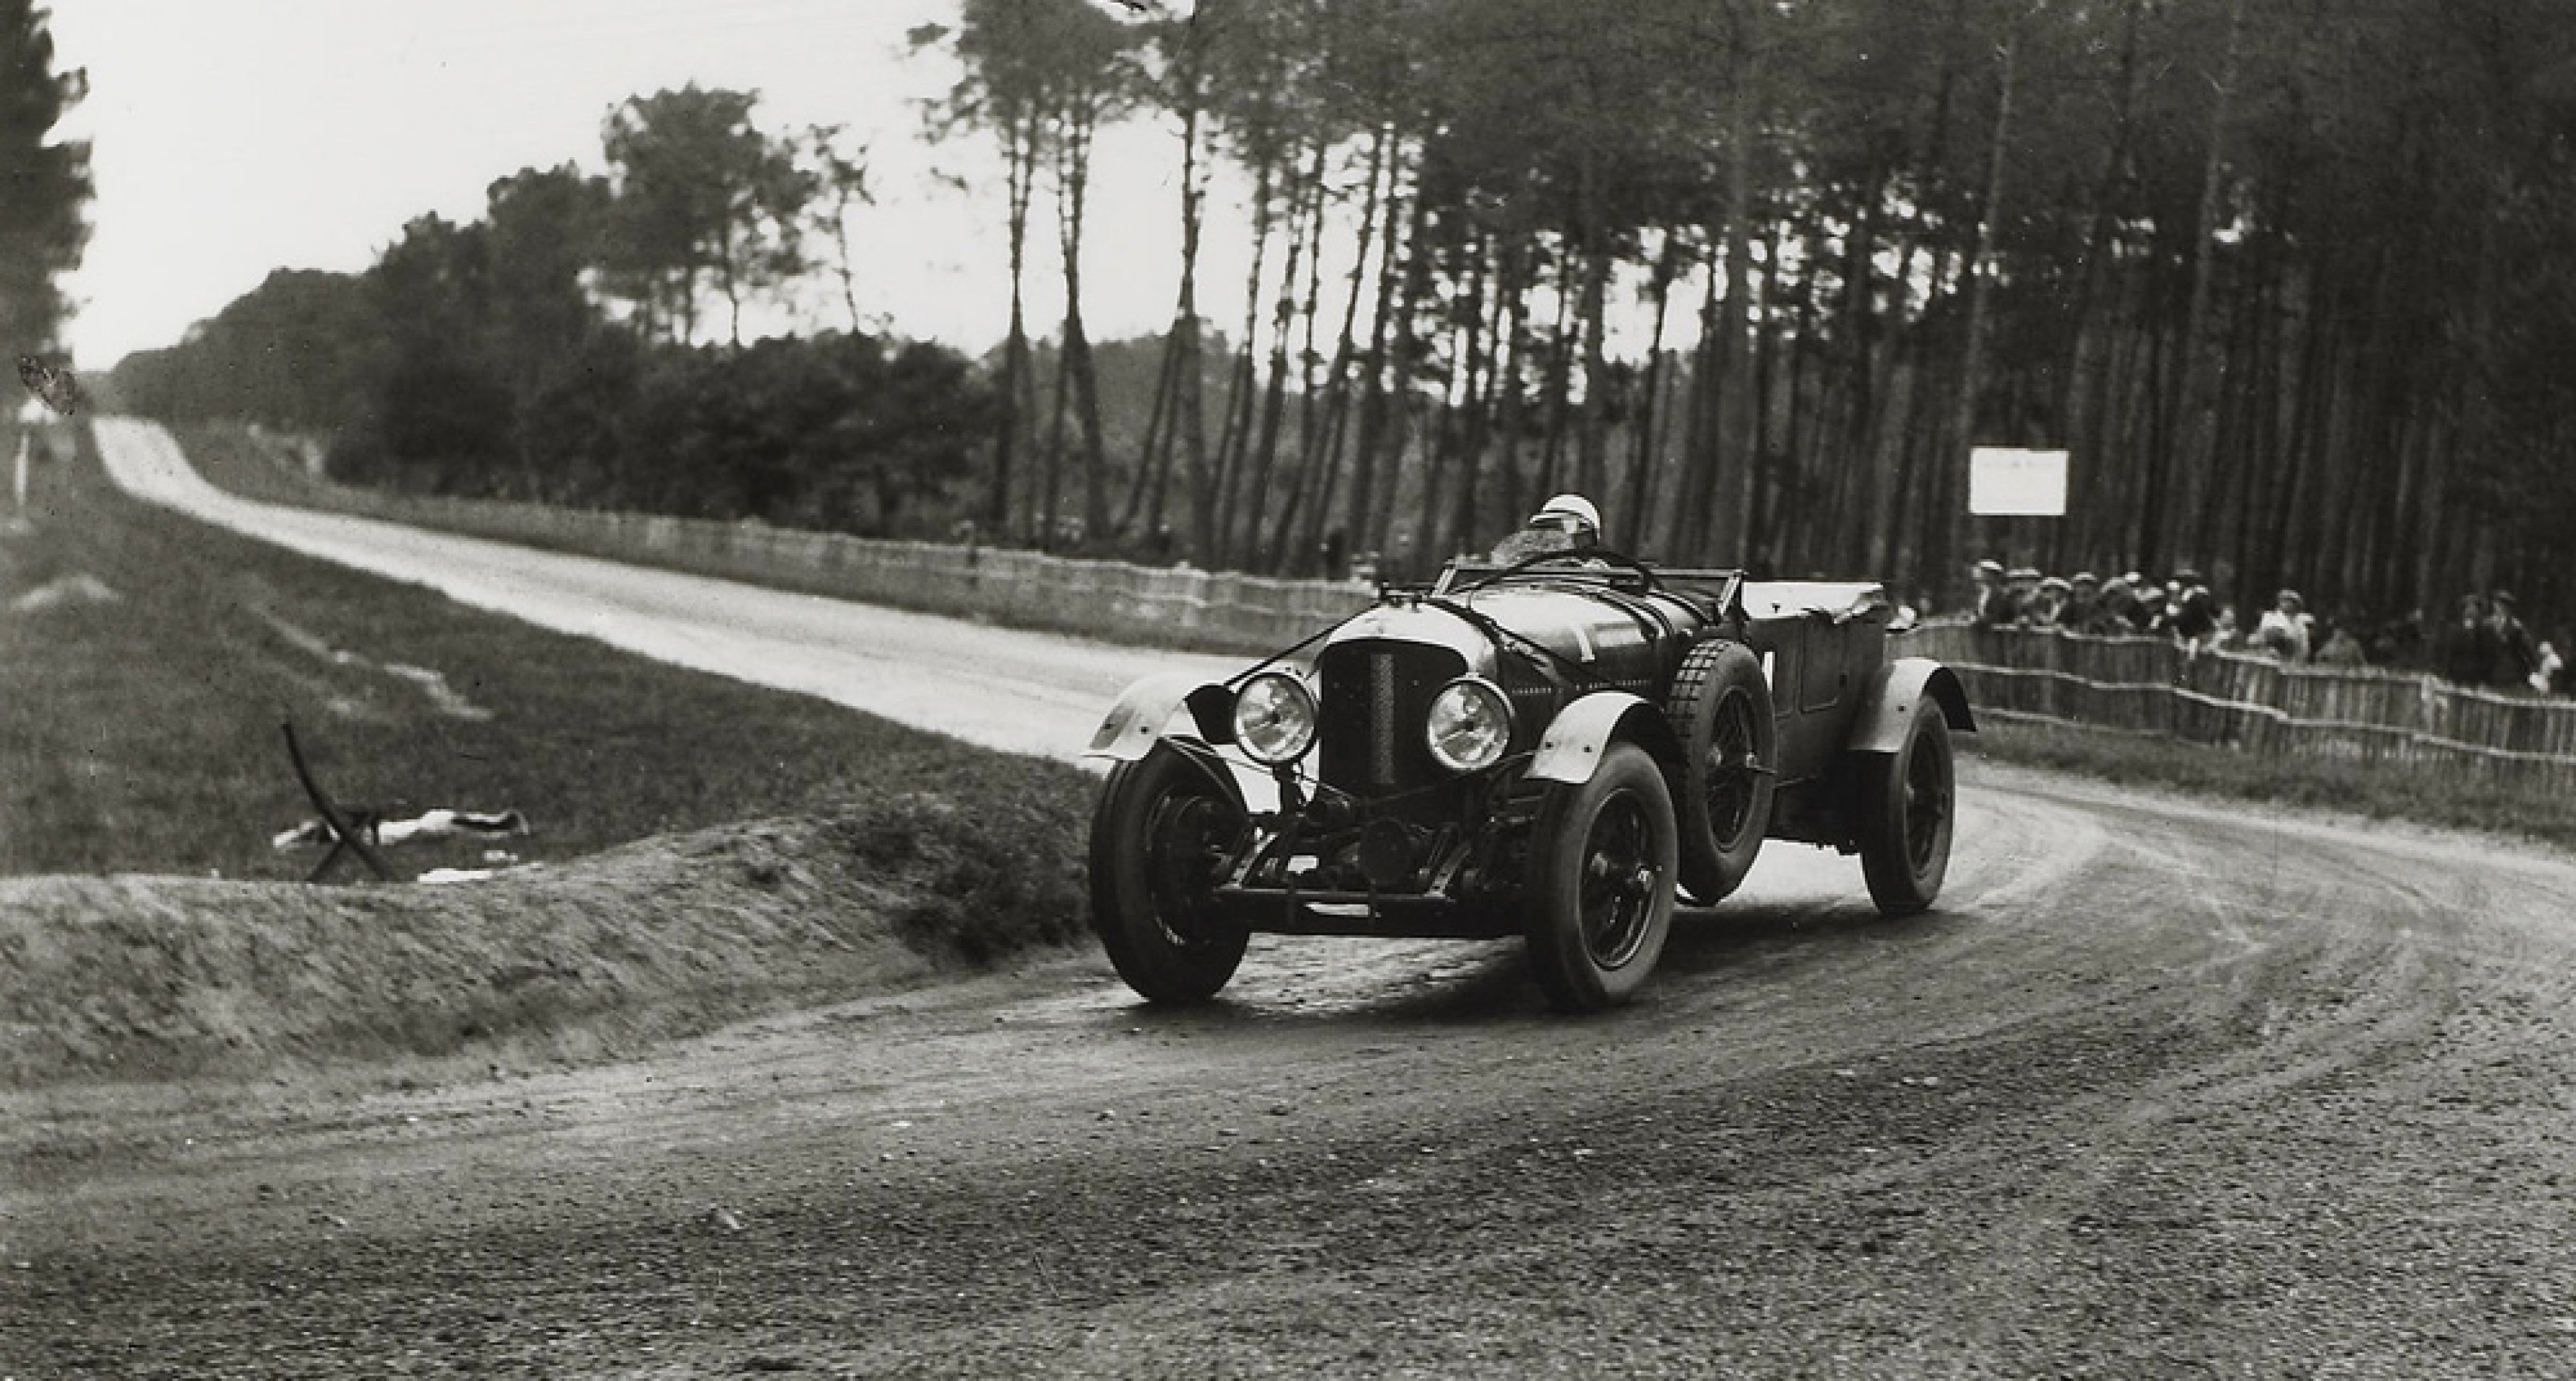 A photograph of Birkin and Barnato's Bentley at Le Mans in 1929, auctioned by Bonhams in 2006.